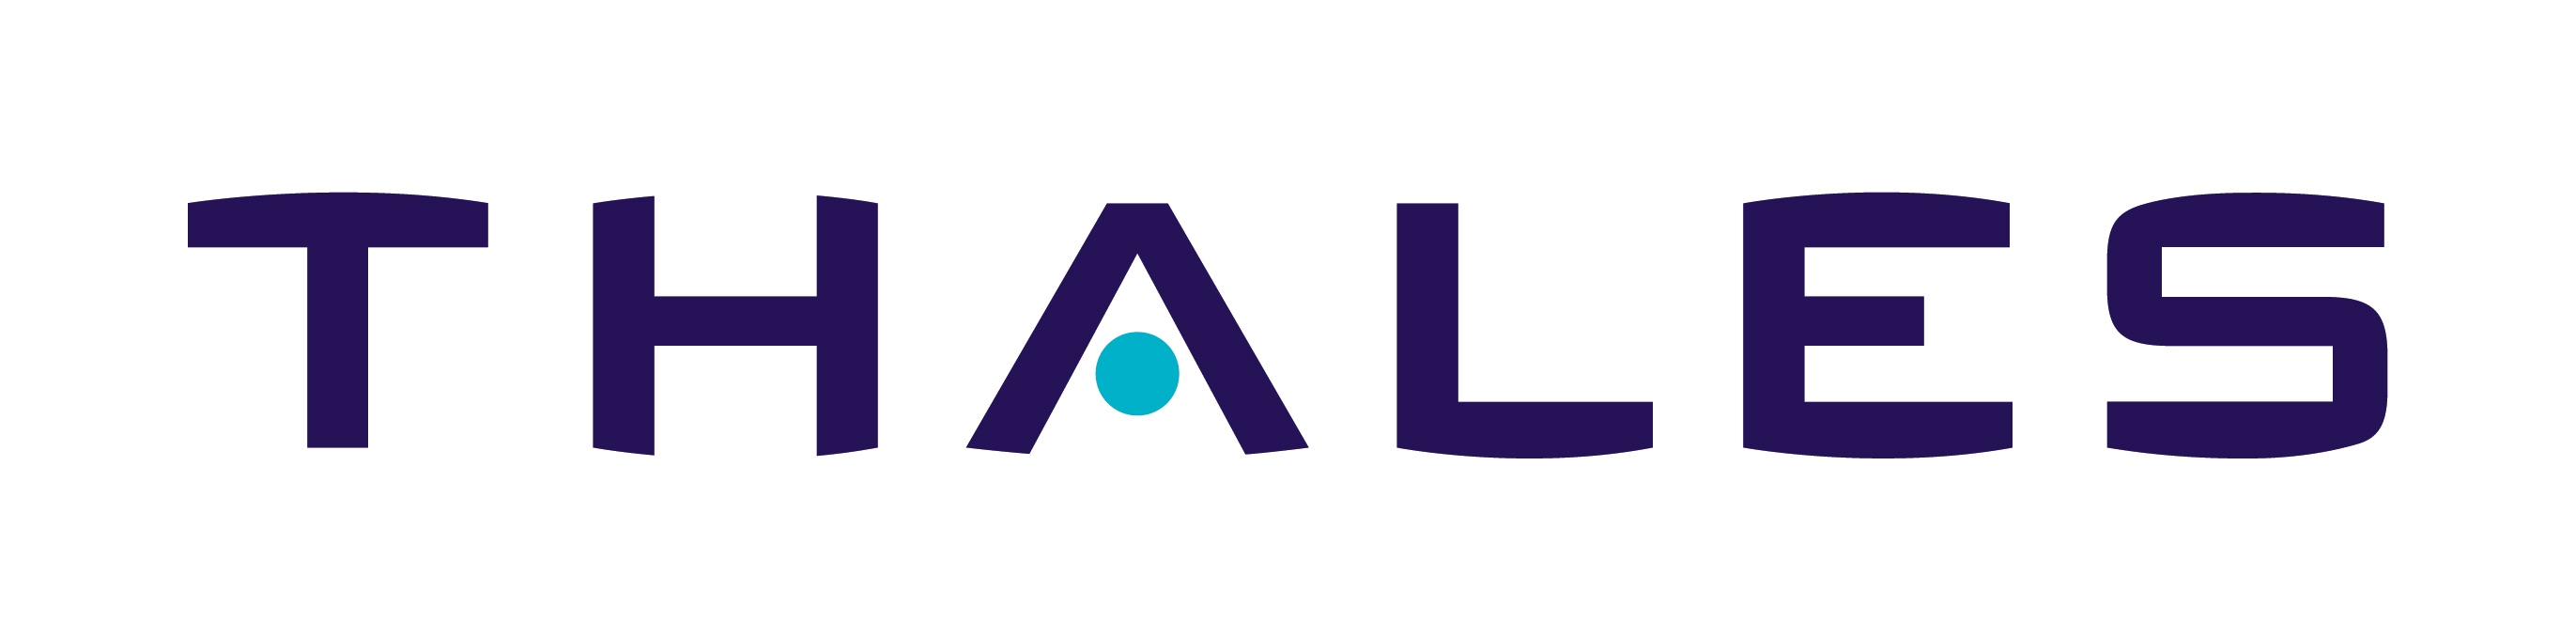 Groupe Thales